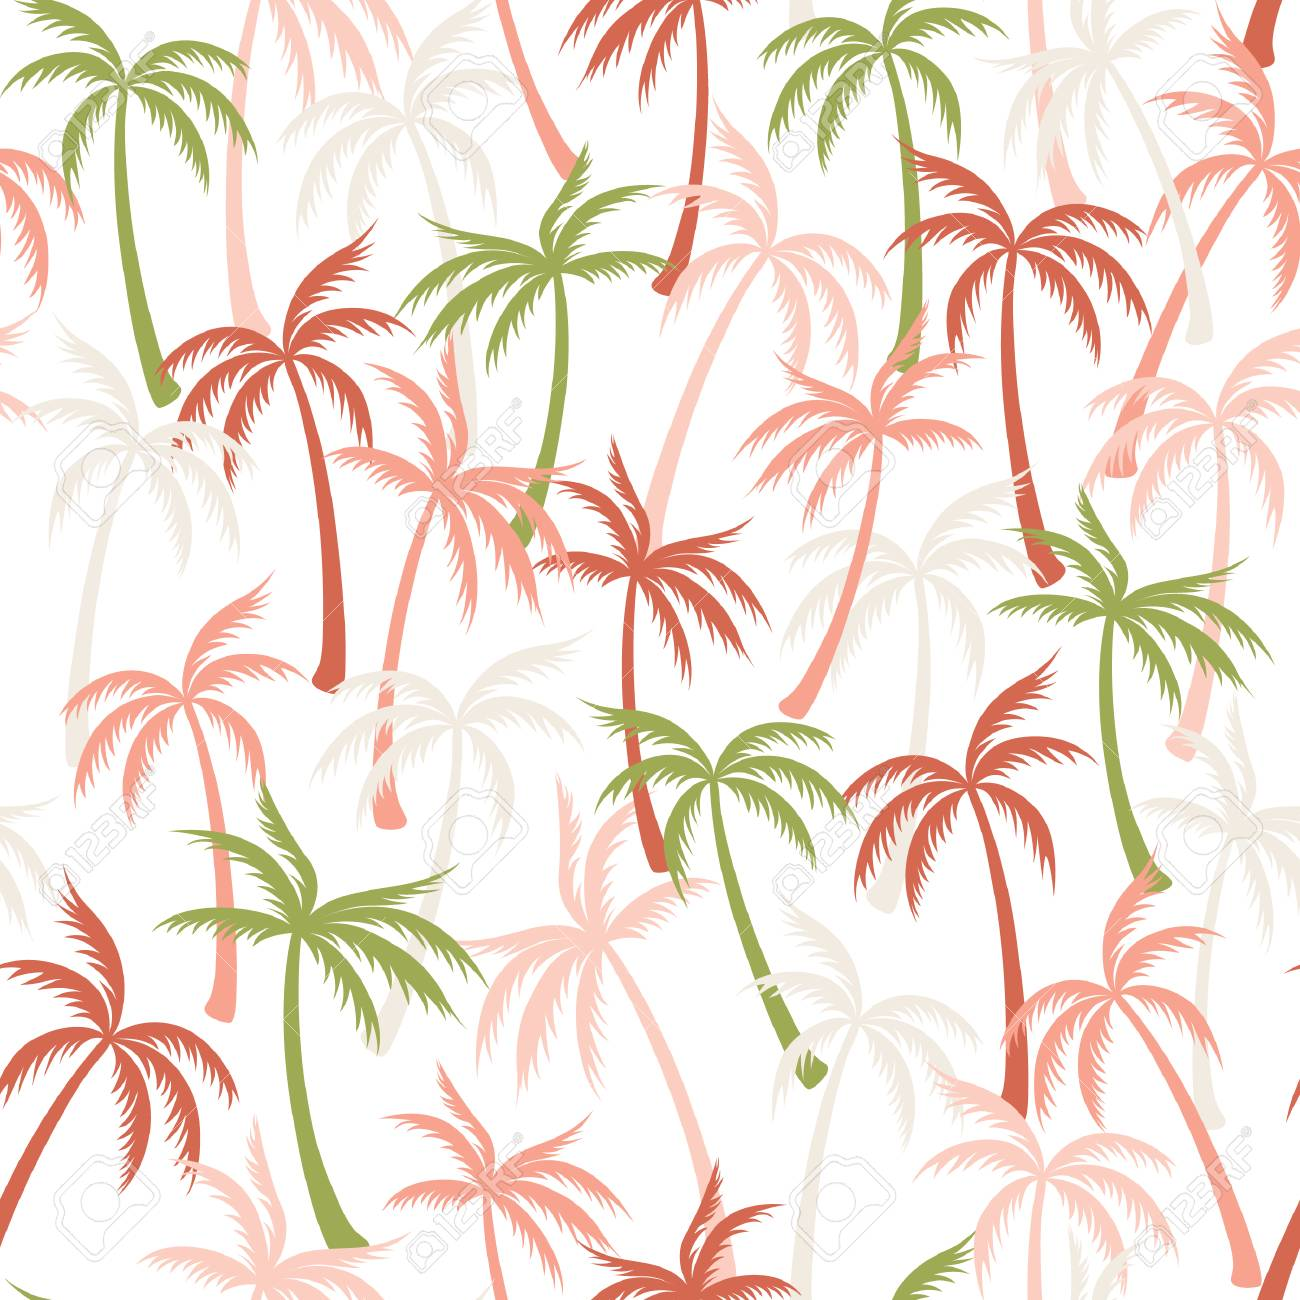 Coconut Palm Tree Pattern Textile Seamless Tropical Forest Background Royalty Free Cliparts Vectors And Stock Illustration Image 117924235